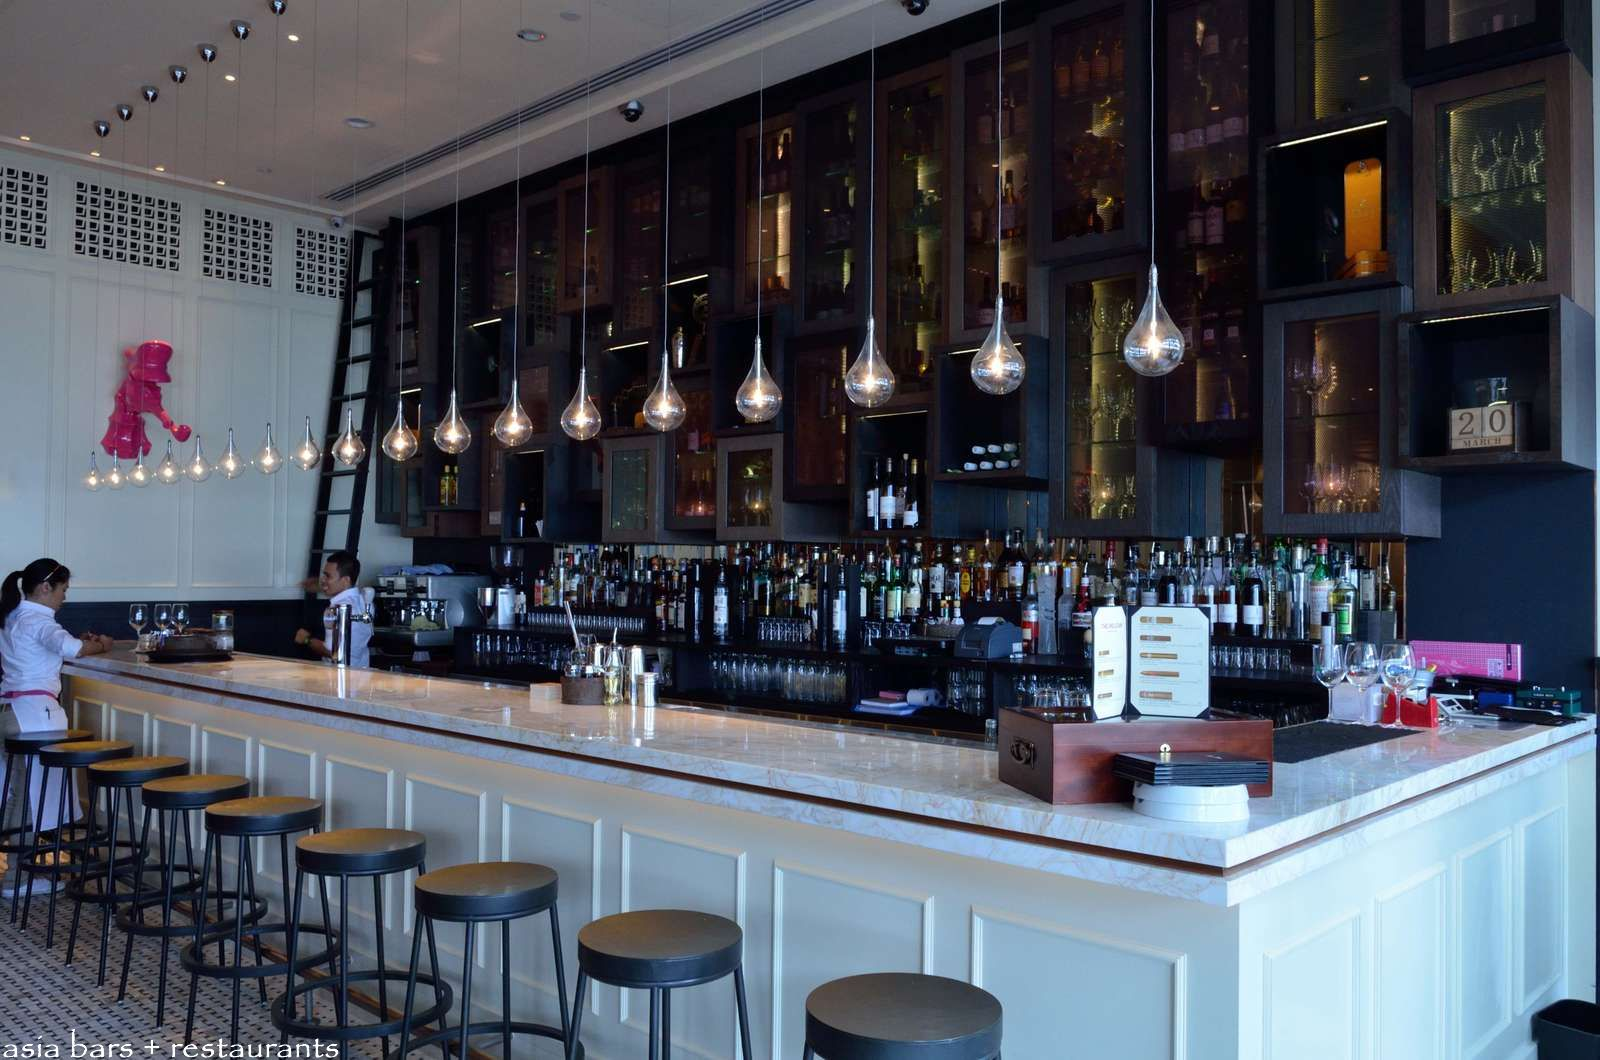 The Pelican Seafood Bar  Grill in Singapore  Asia Bars